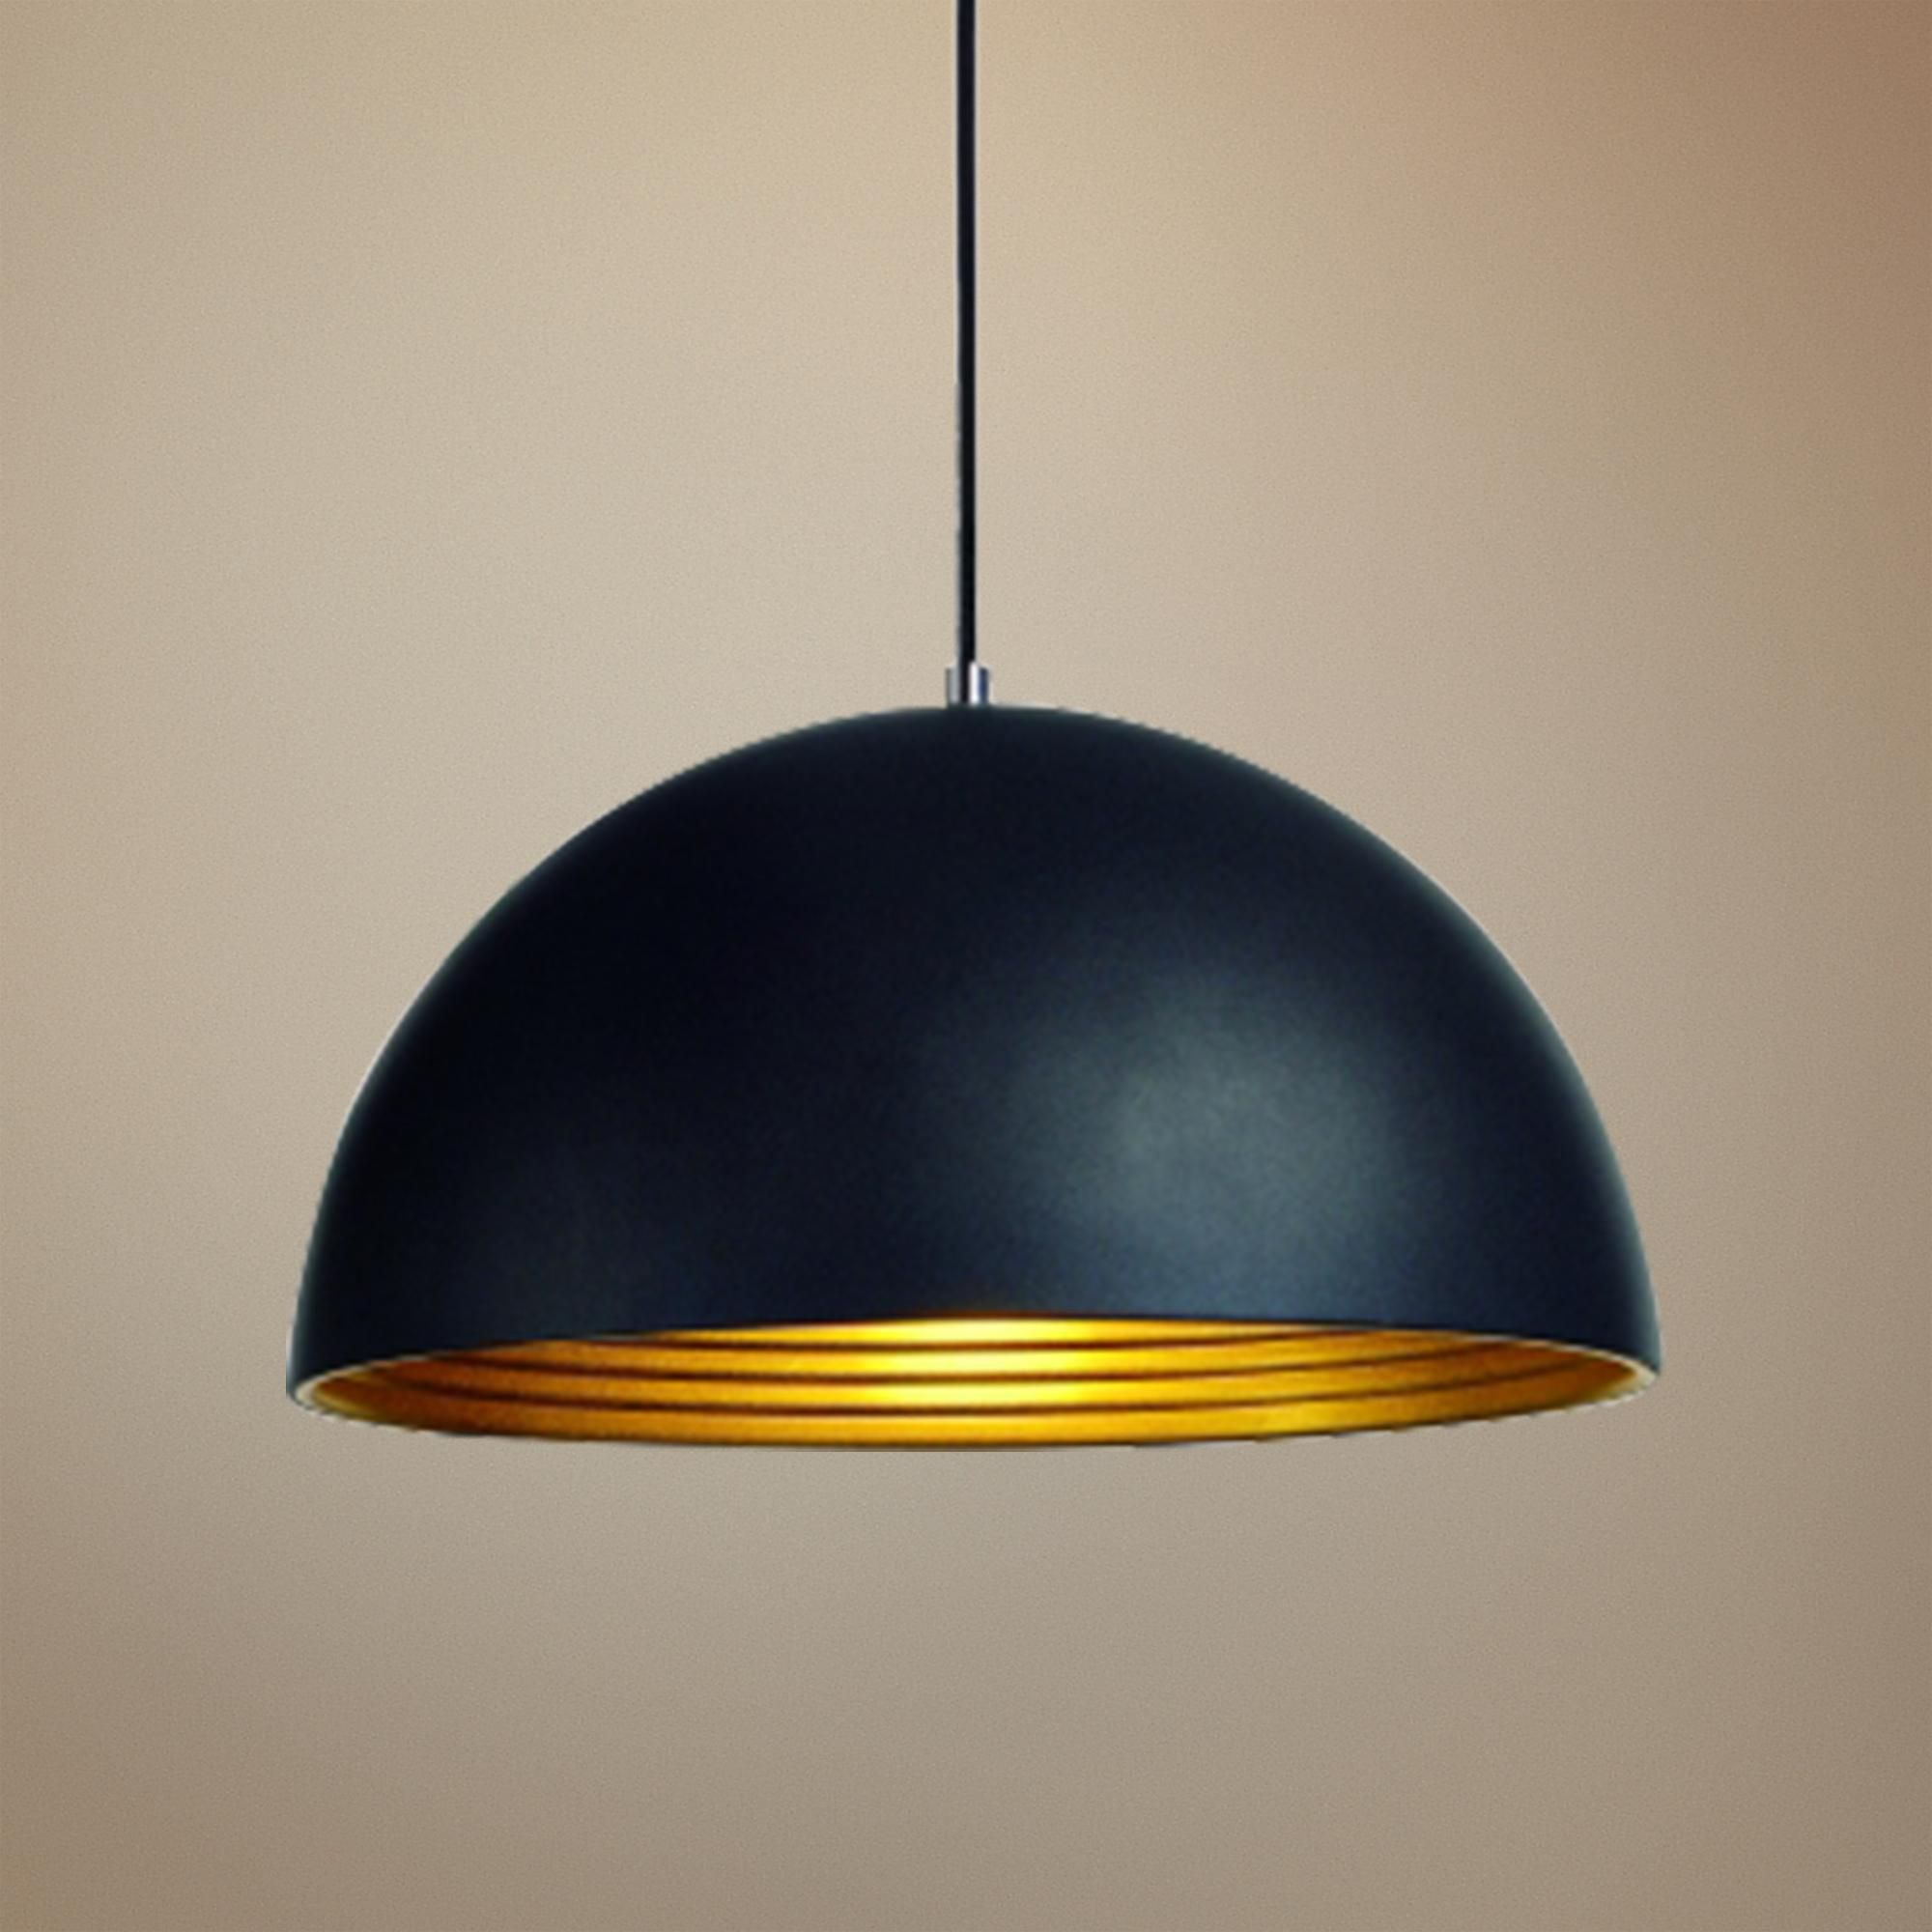 pendant products esque royale super image dome